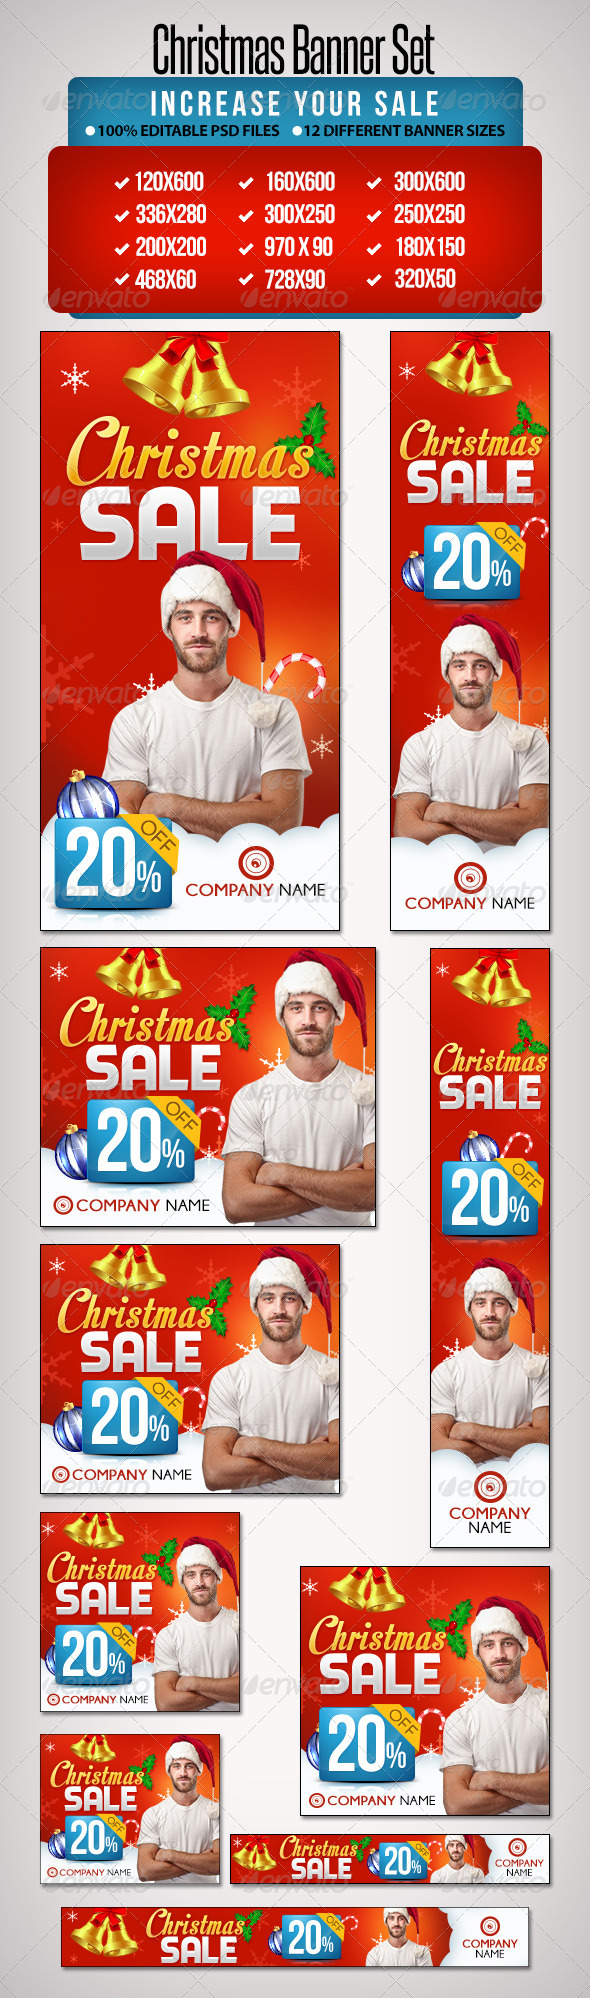 Christmas Banner Set 4 - 12 Sizes - Banners & Ads Web Elements